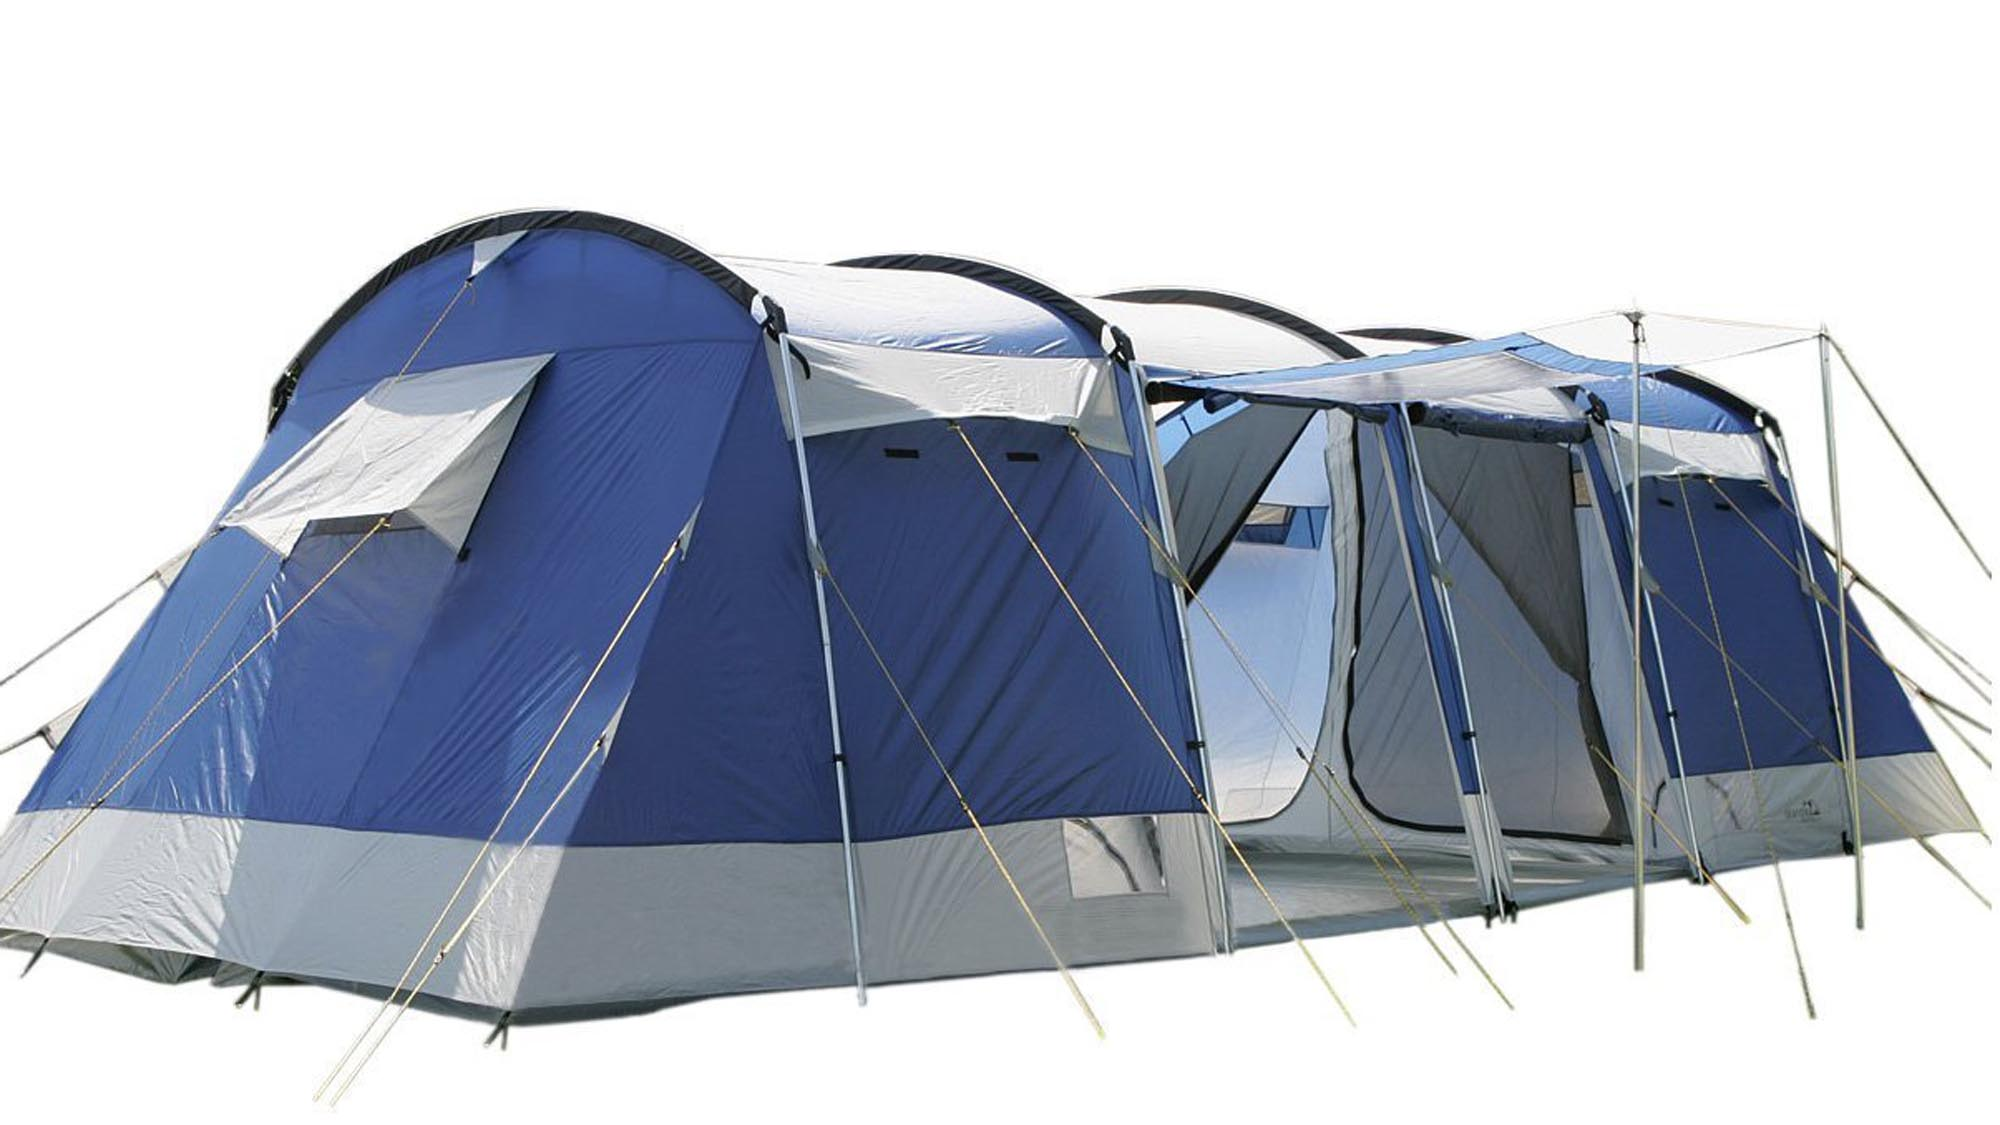 ... to beat for families and groups who want a comfortable temporary home rather than just a place to lay their heads. Skandikau0027s top-tier model sleeps up ...  sc 1 st  Expert Reviews & Best tents: The best festival solo and backpacking tents from £25 ...